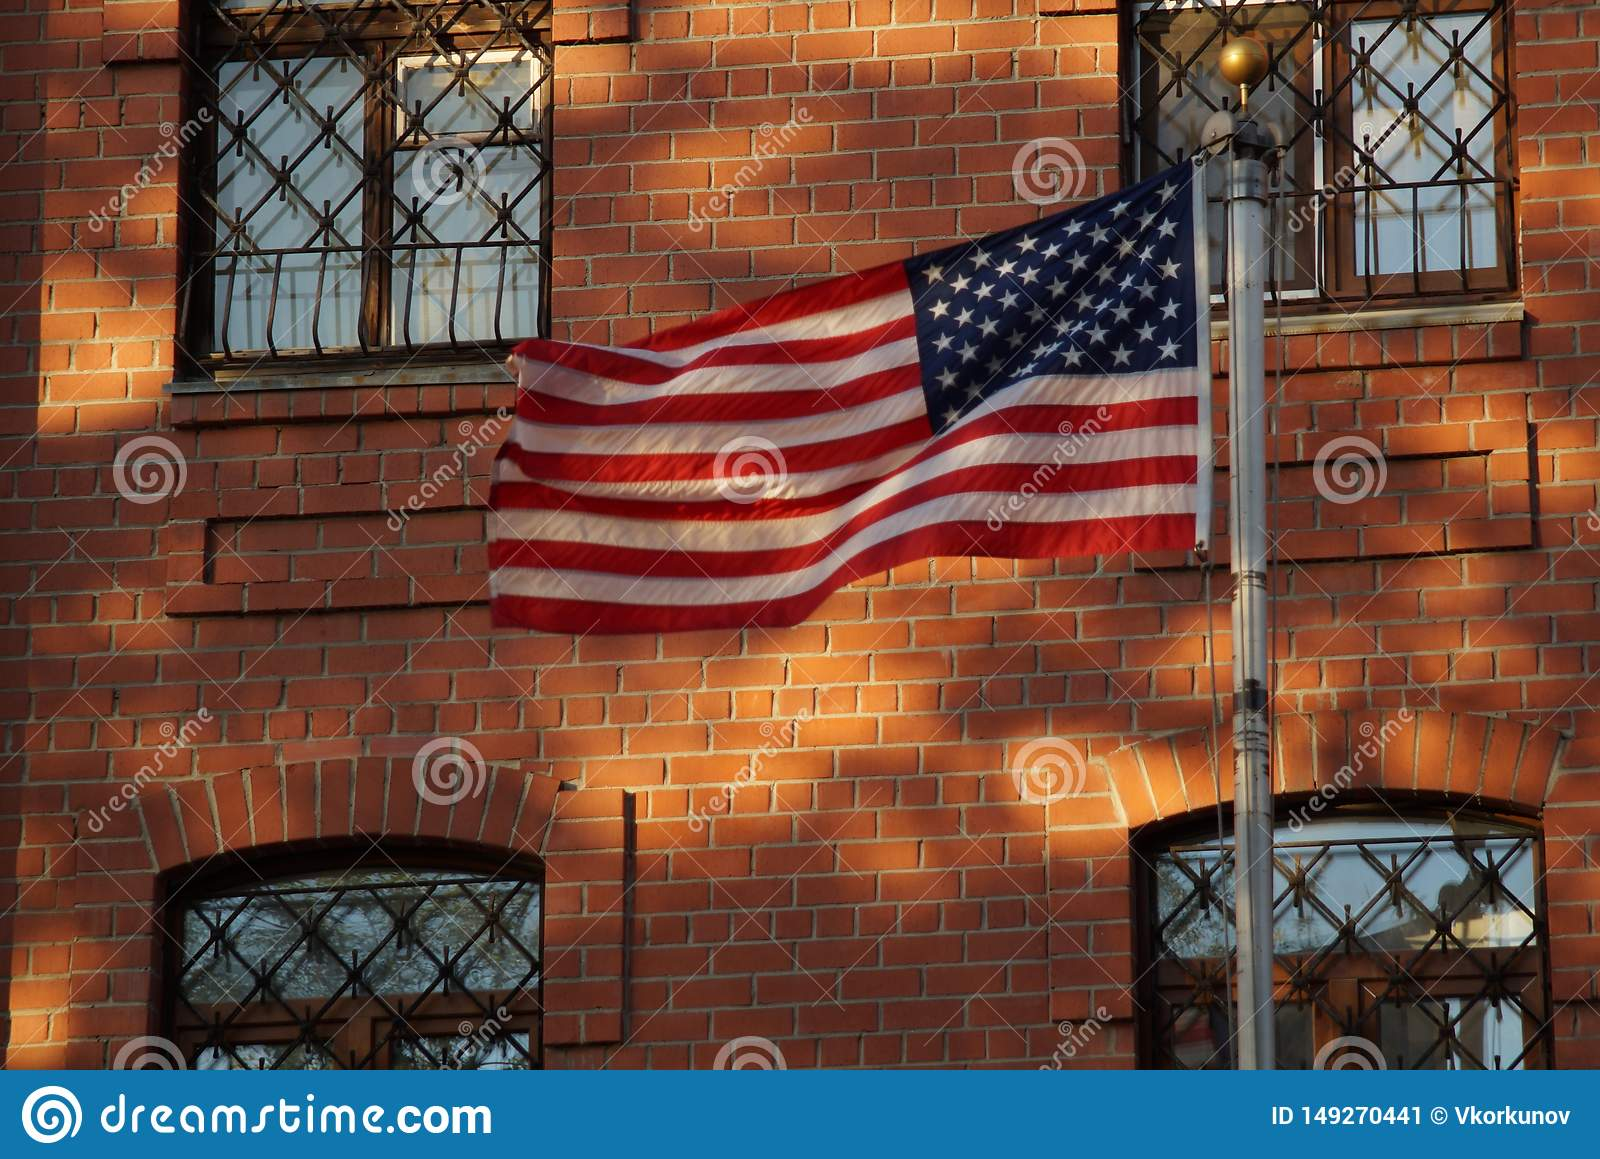 The flag is in harmony with the elements of the facade.